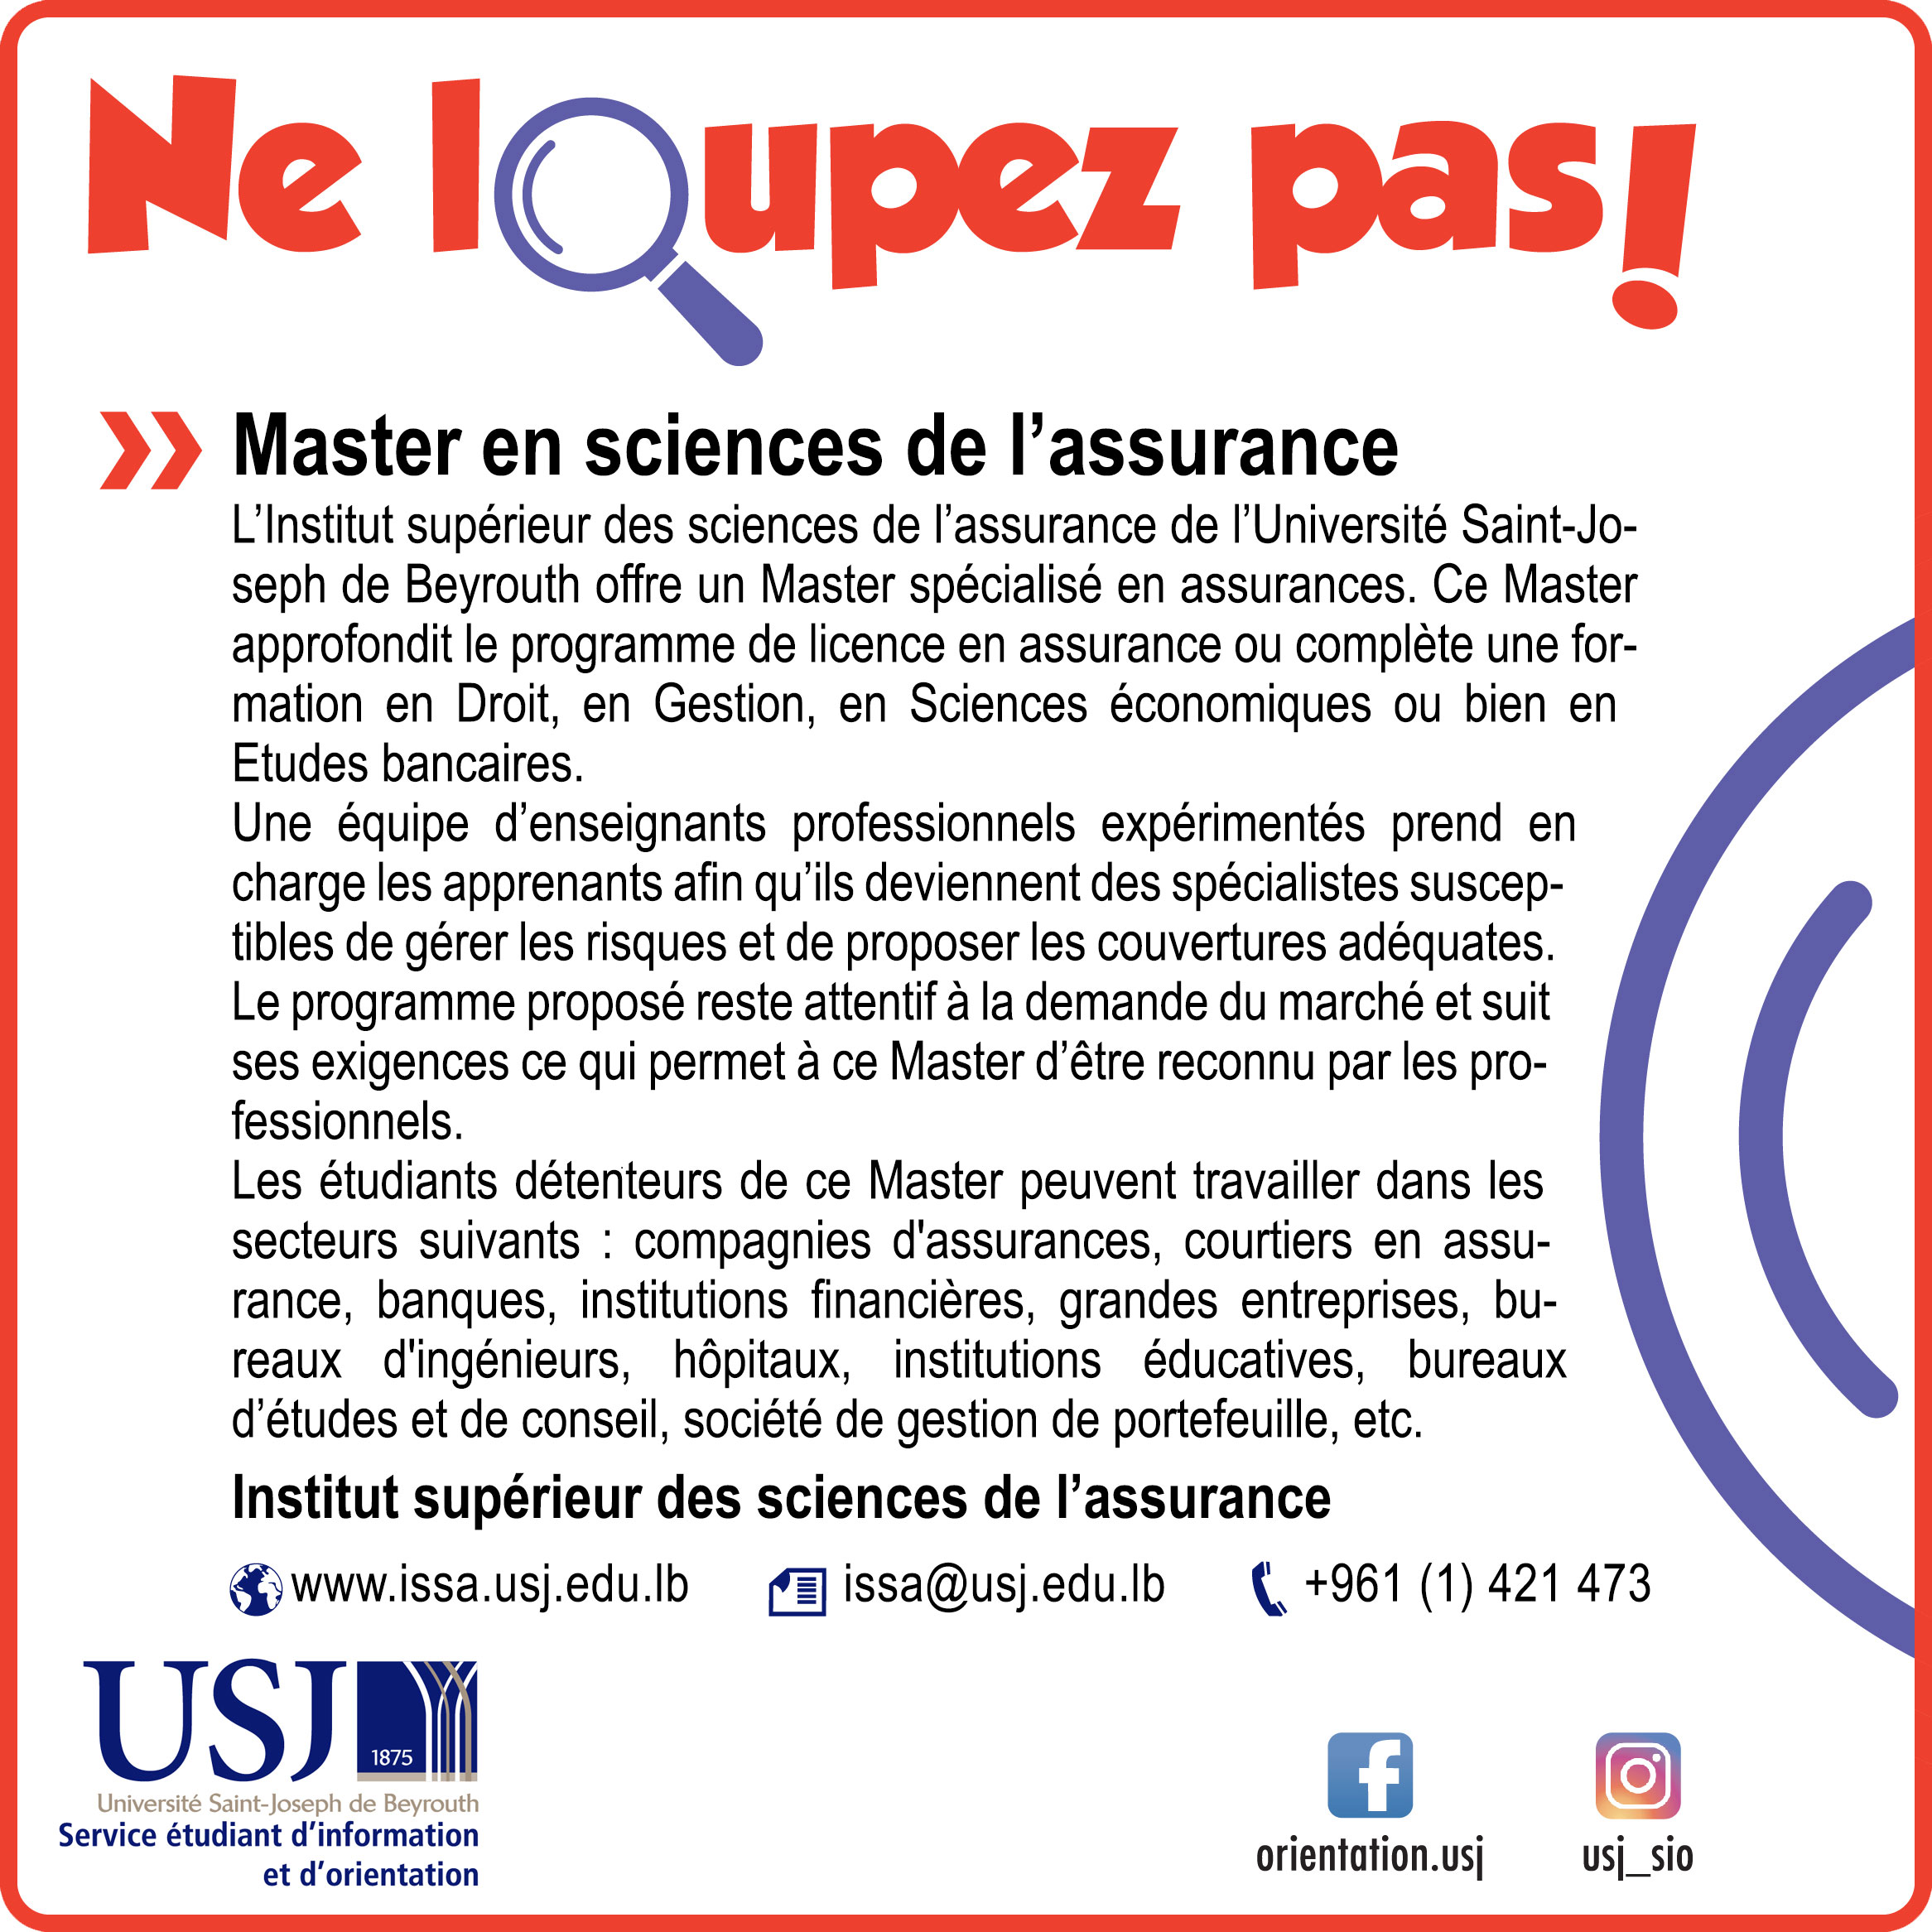 Master en sciences de l'assurance